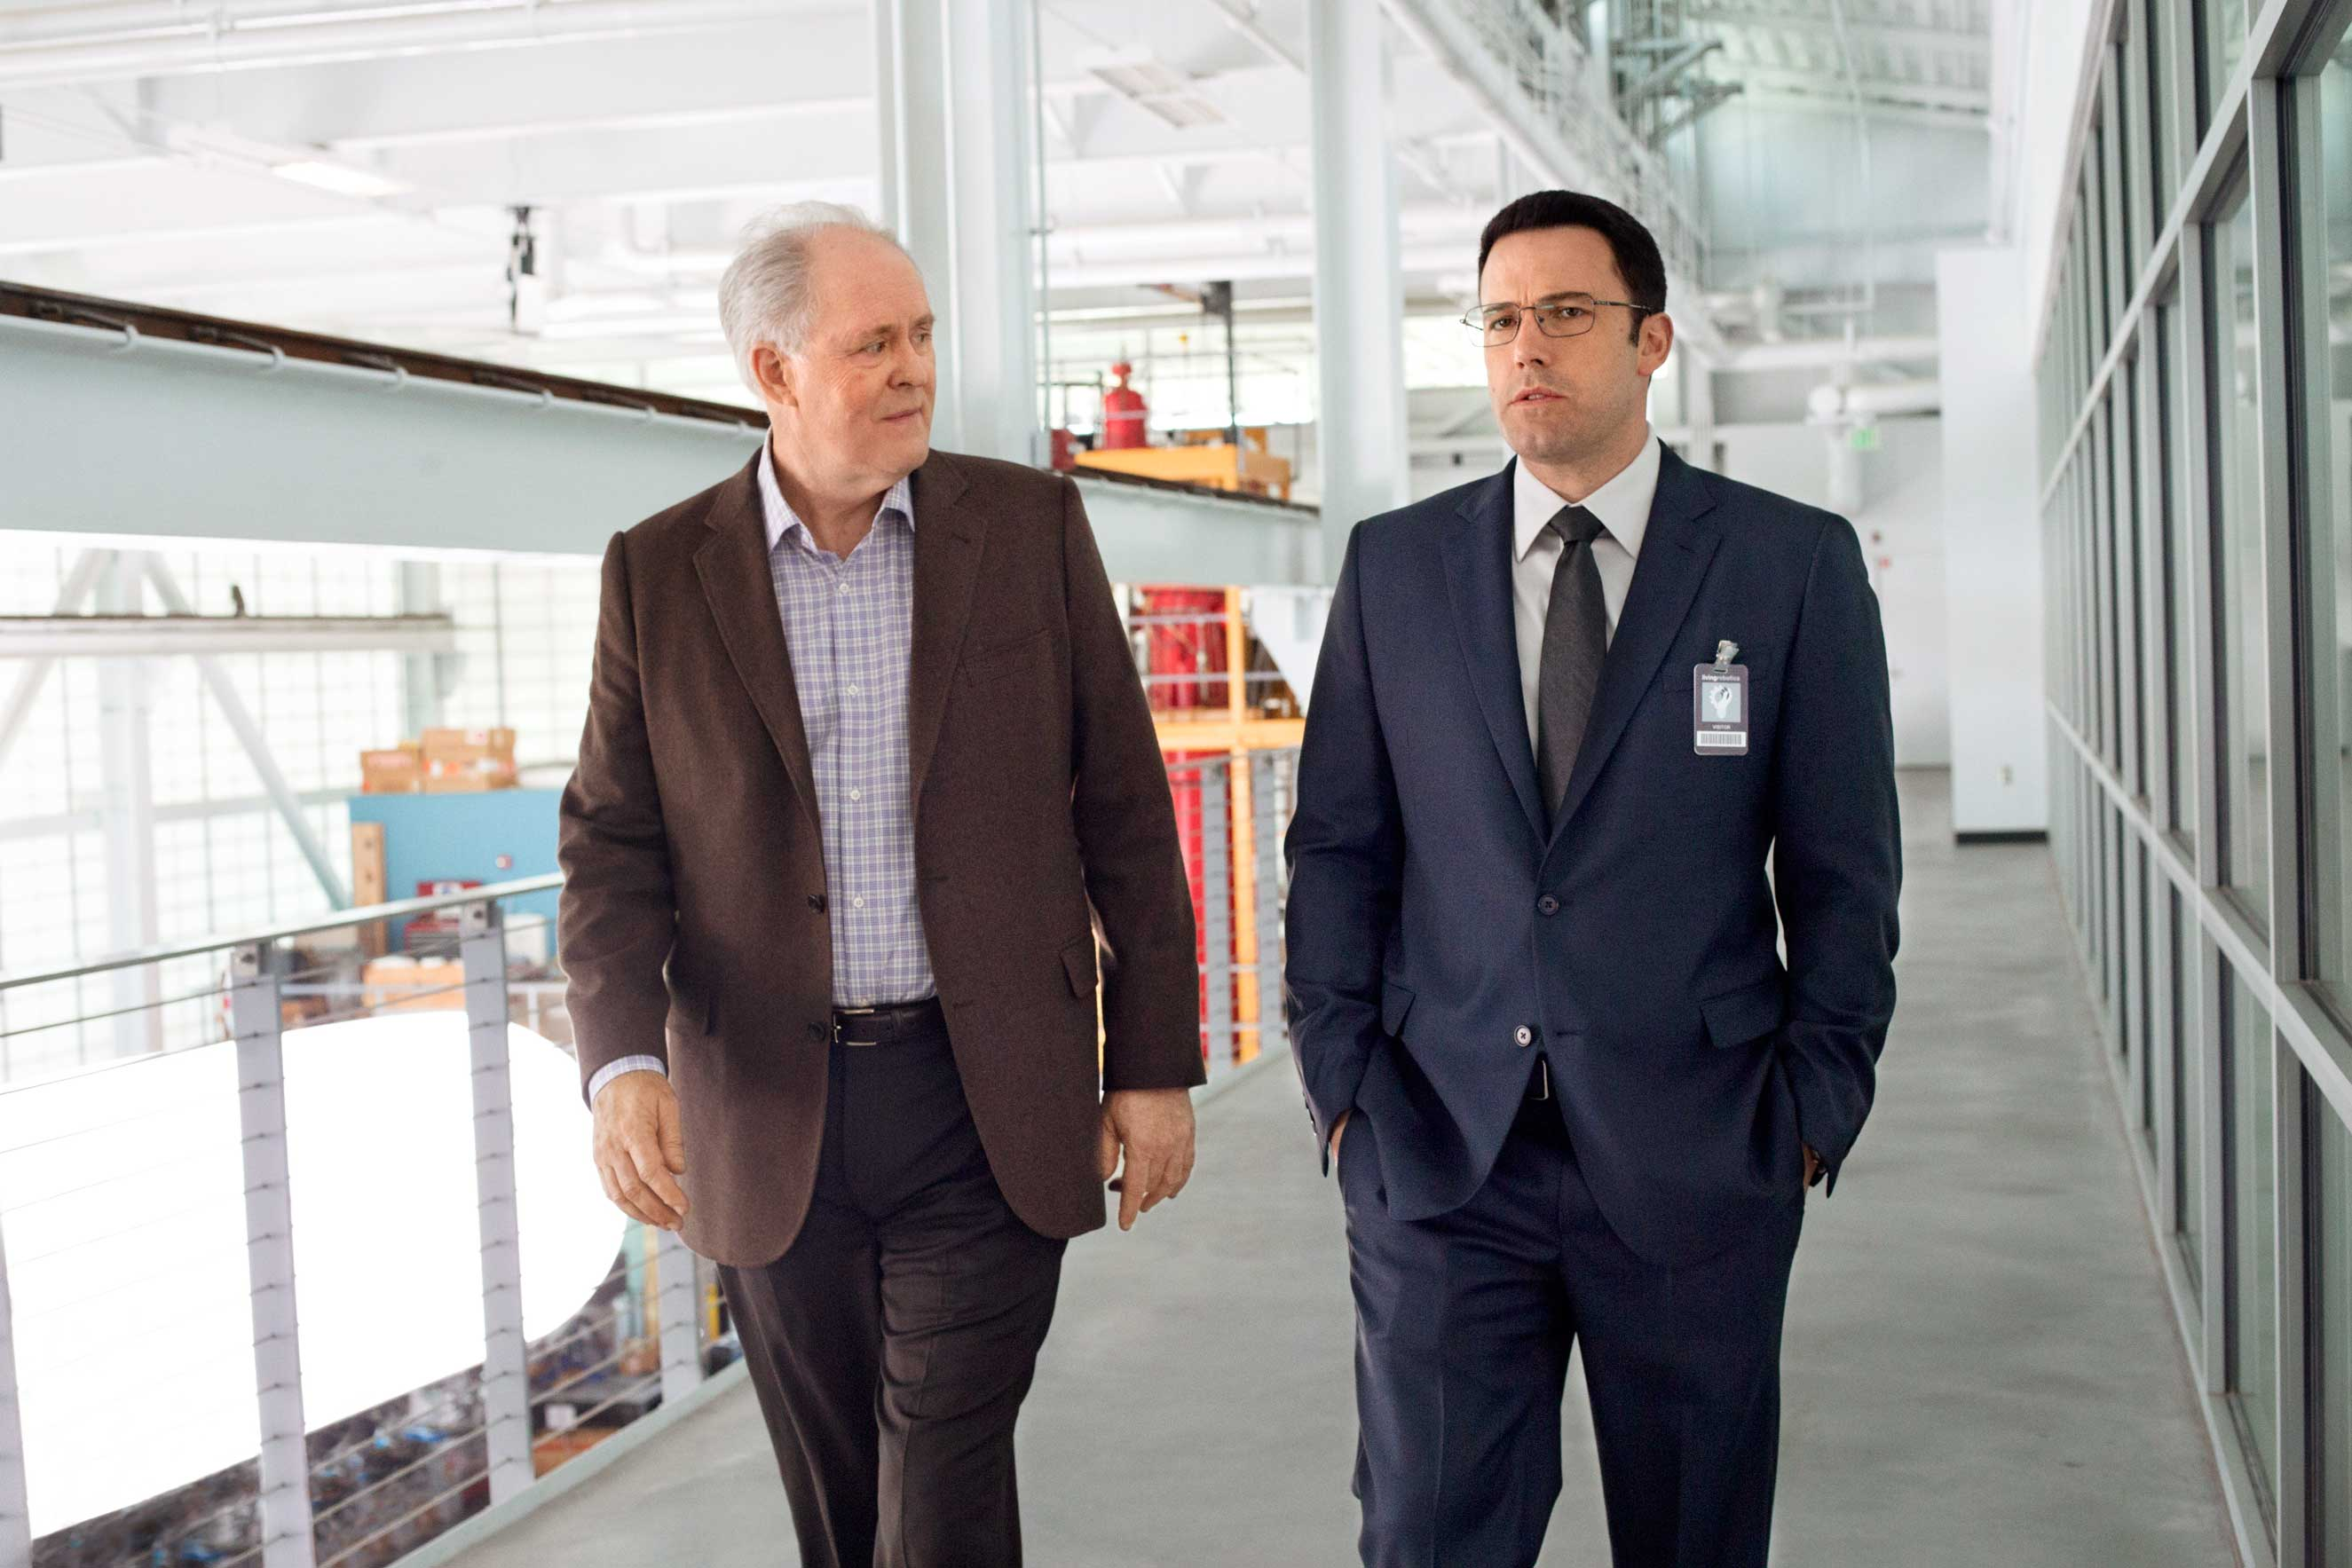 Lithgow and Affleck do their best to make talking about numbers look interesting